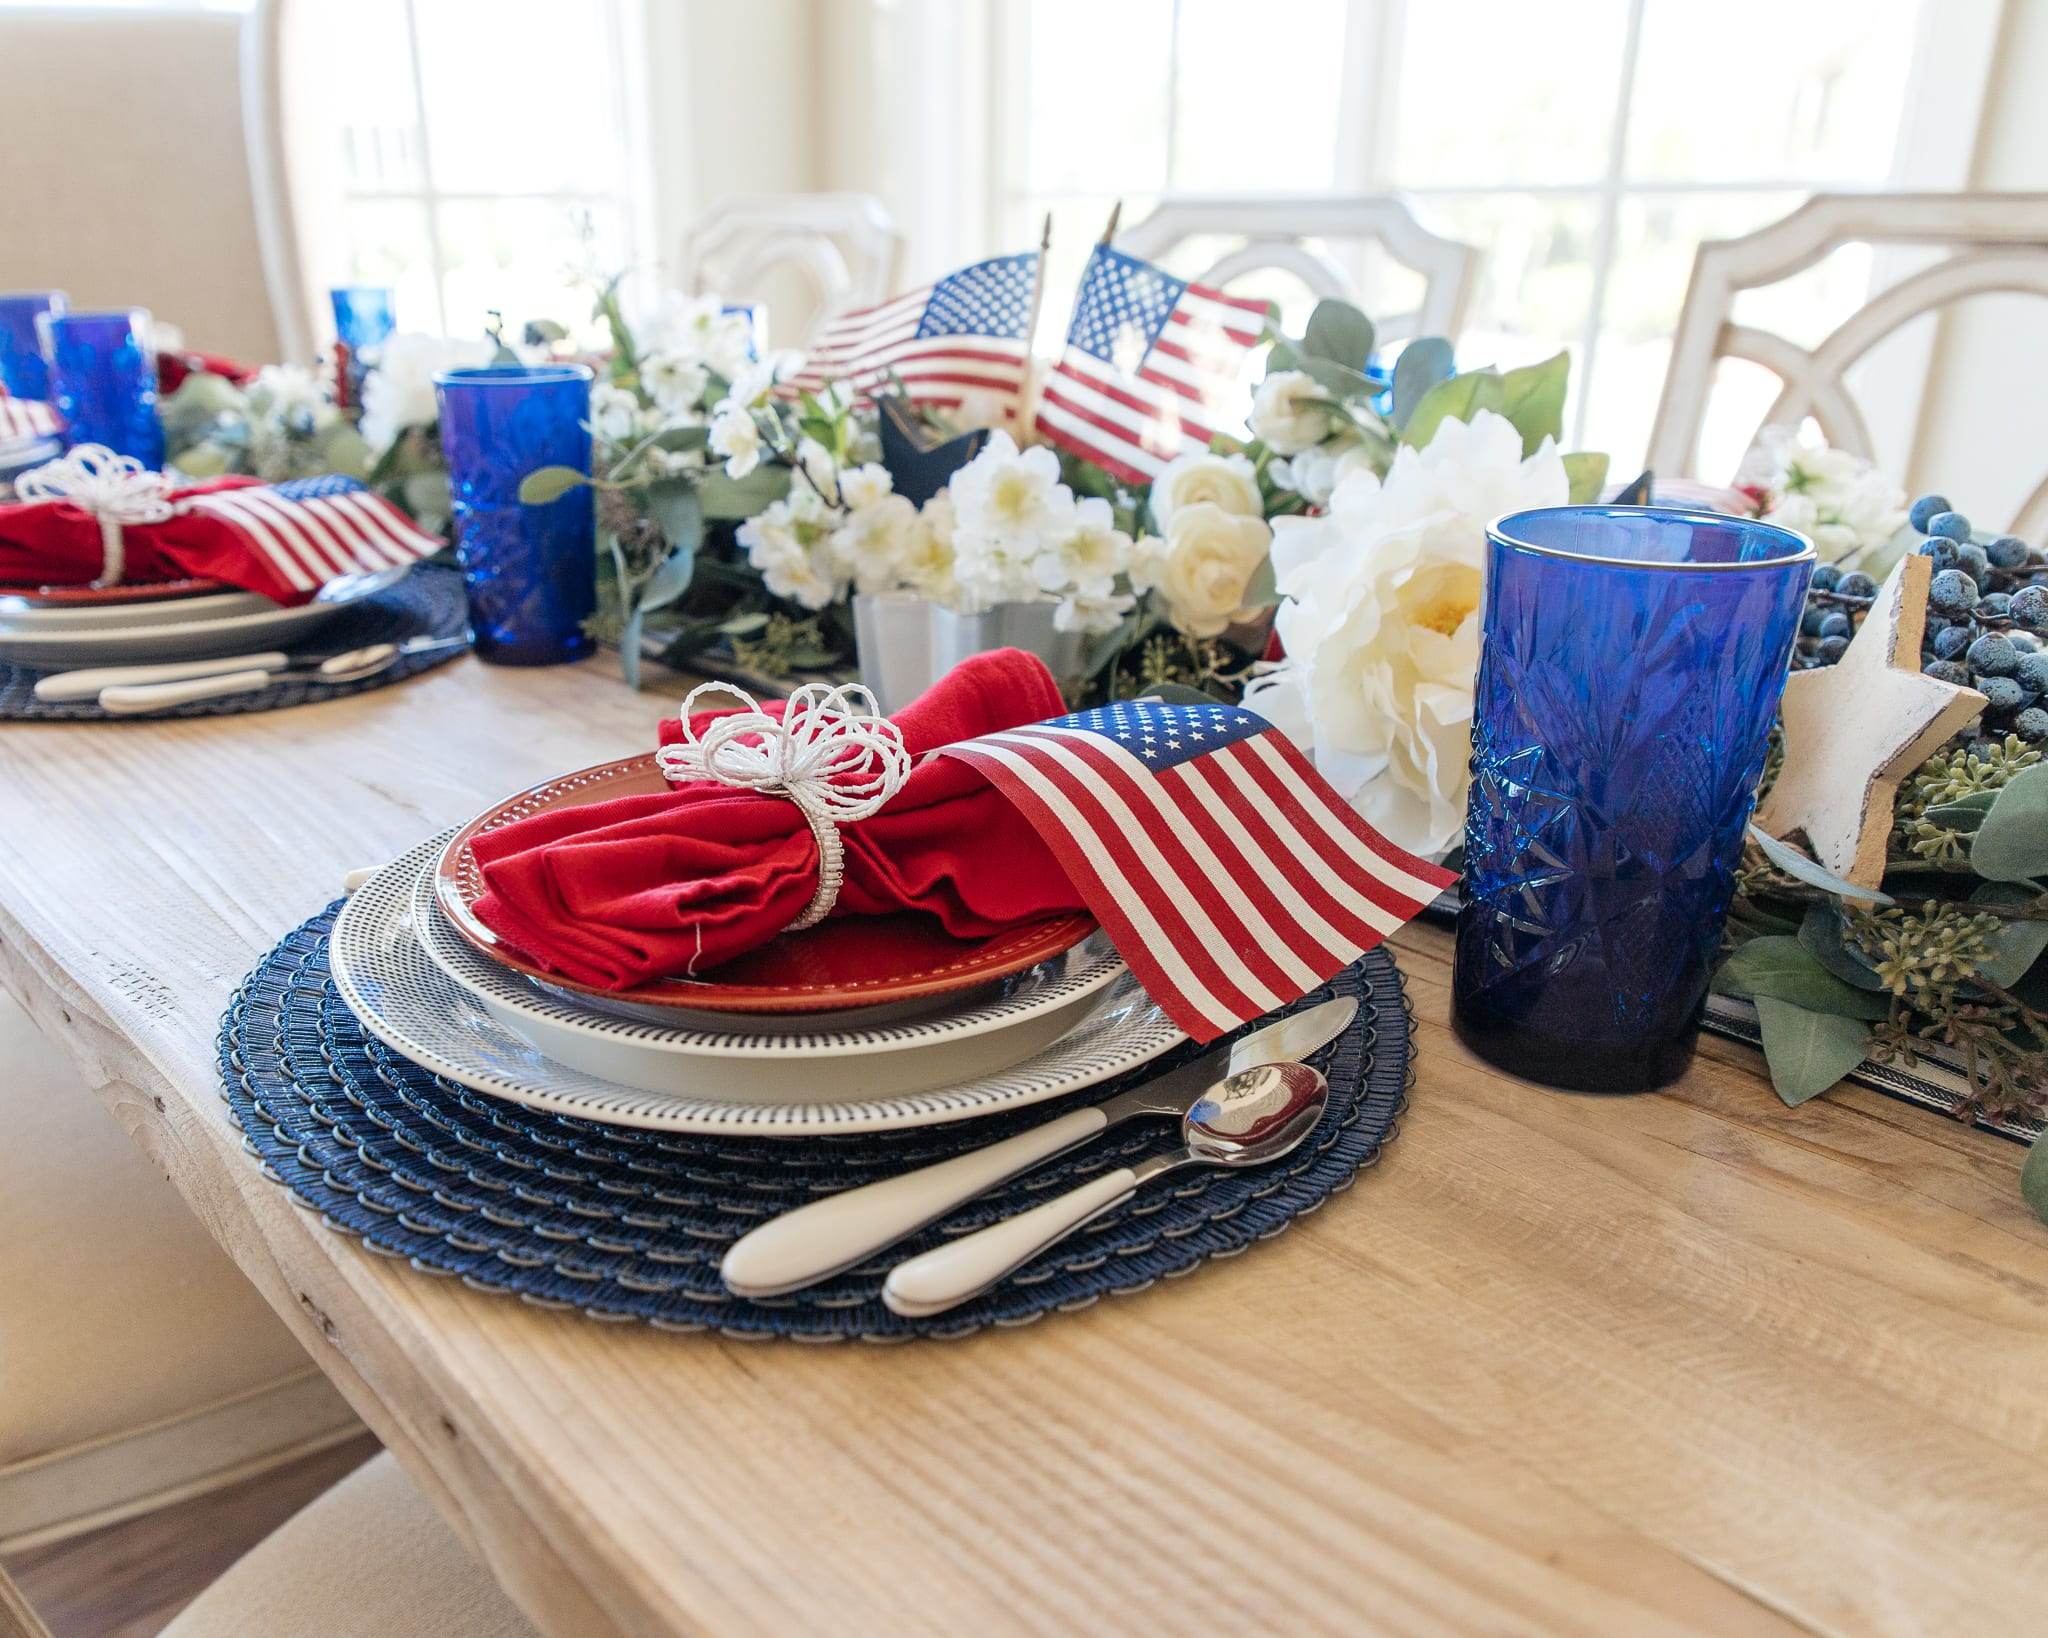 american flag day, patriotic tablescape, patriotic table-setting, patriotic decor, fourth july, 4th of july, tablescape, table setting, placesetting, memorial day decor, memorial day tablescape, dinnerware, entertaining, summer entertaining